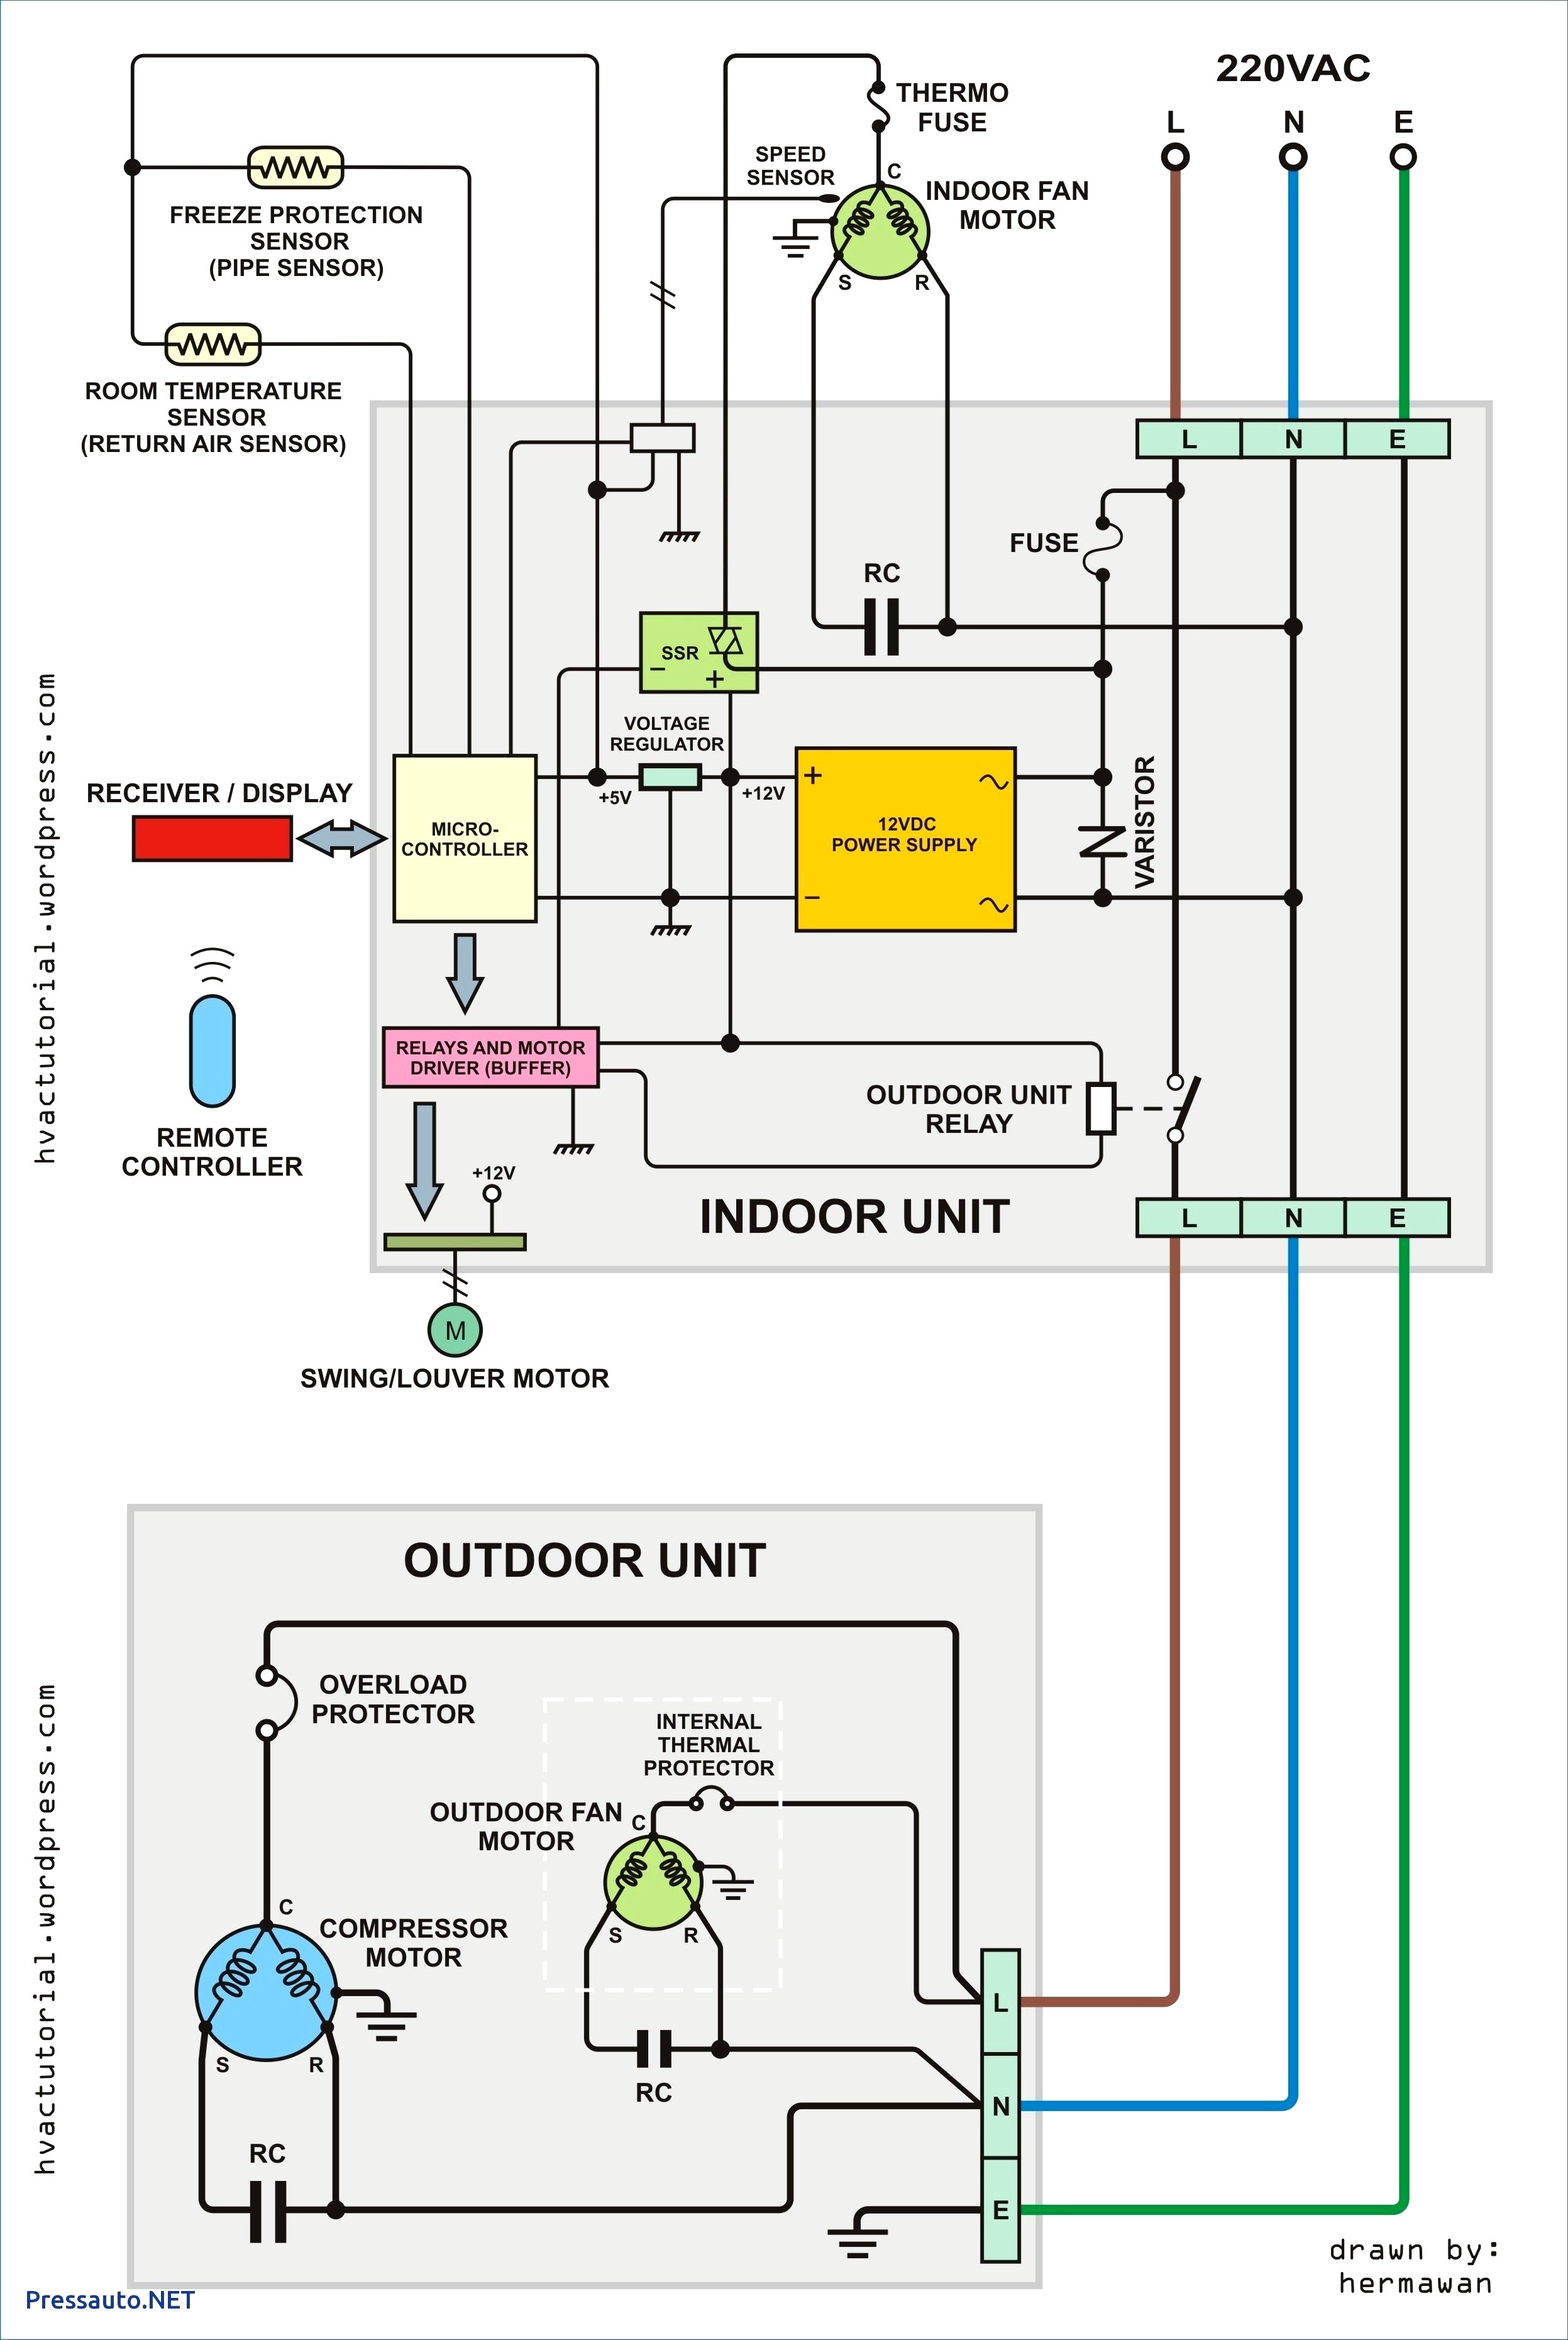 jayco eagle wiring diagram map gold atomic structure download